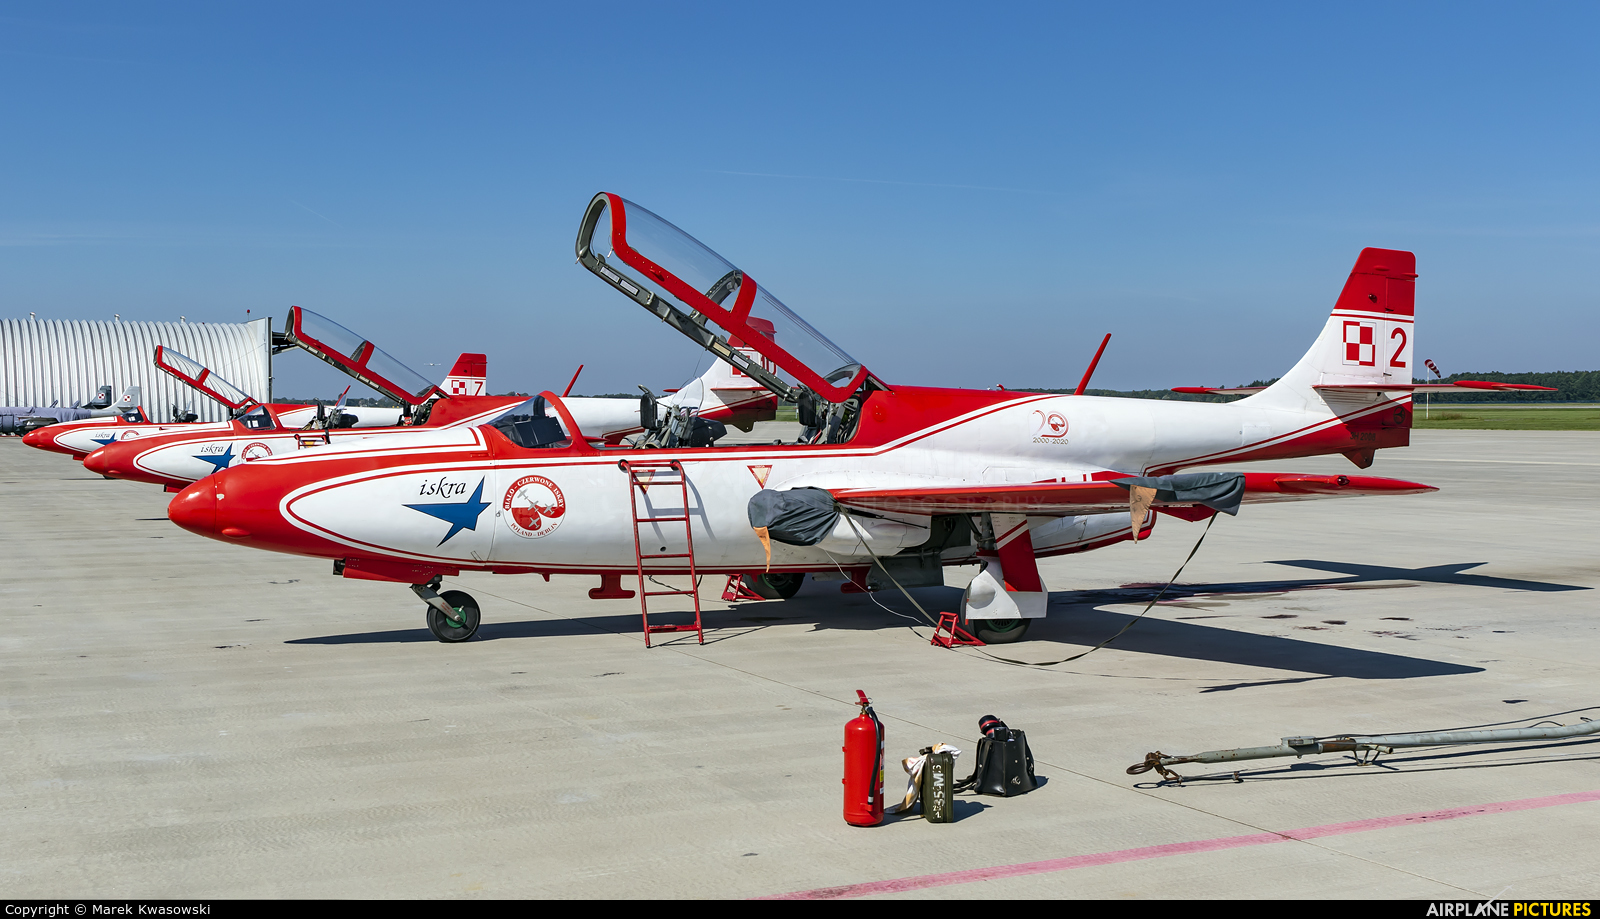 Poland - Air Force: White & Red Iskras 2 aircraft at Dęblin - Museum of Polish Air Force